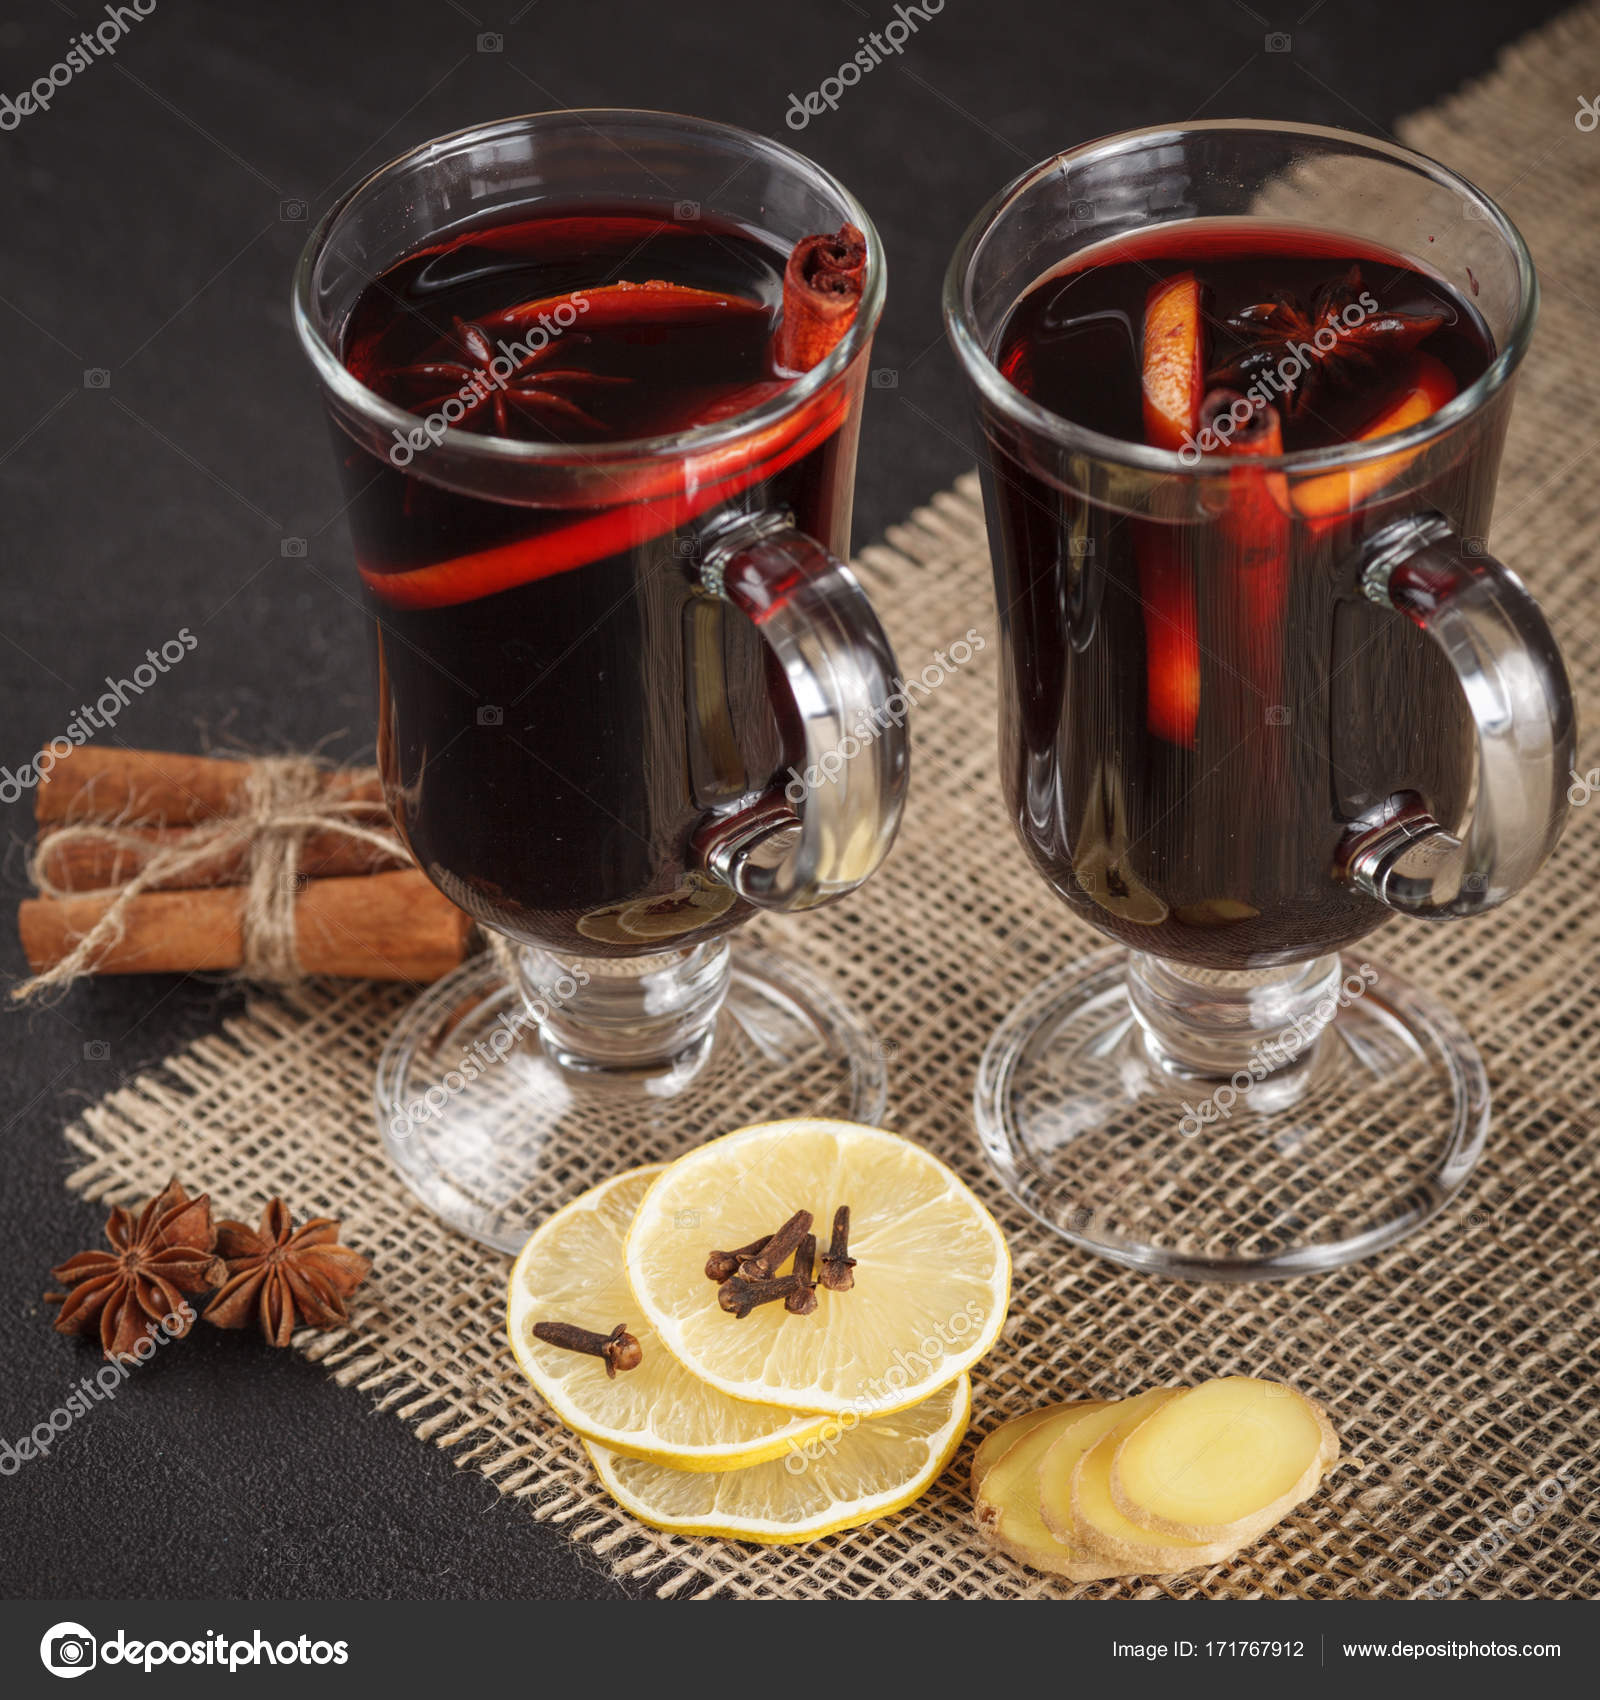 Mulled Wine Banner Glasses With Hot Red Wine And Spices On Dark Background Modern Dark Mood Style Stock Photo C Rojdesign 171767912